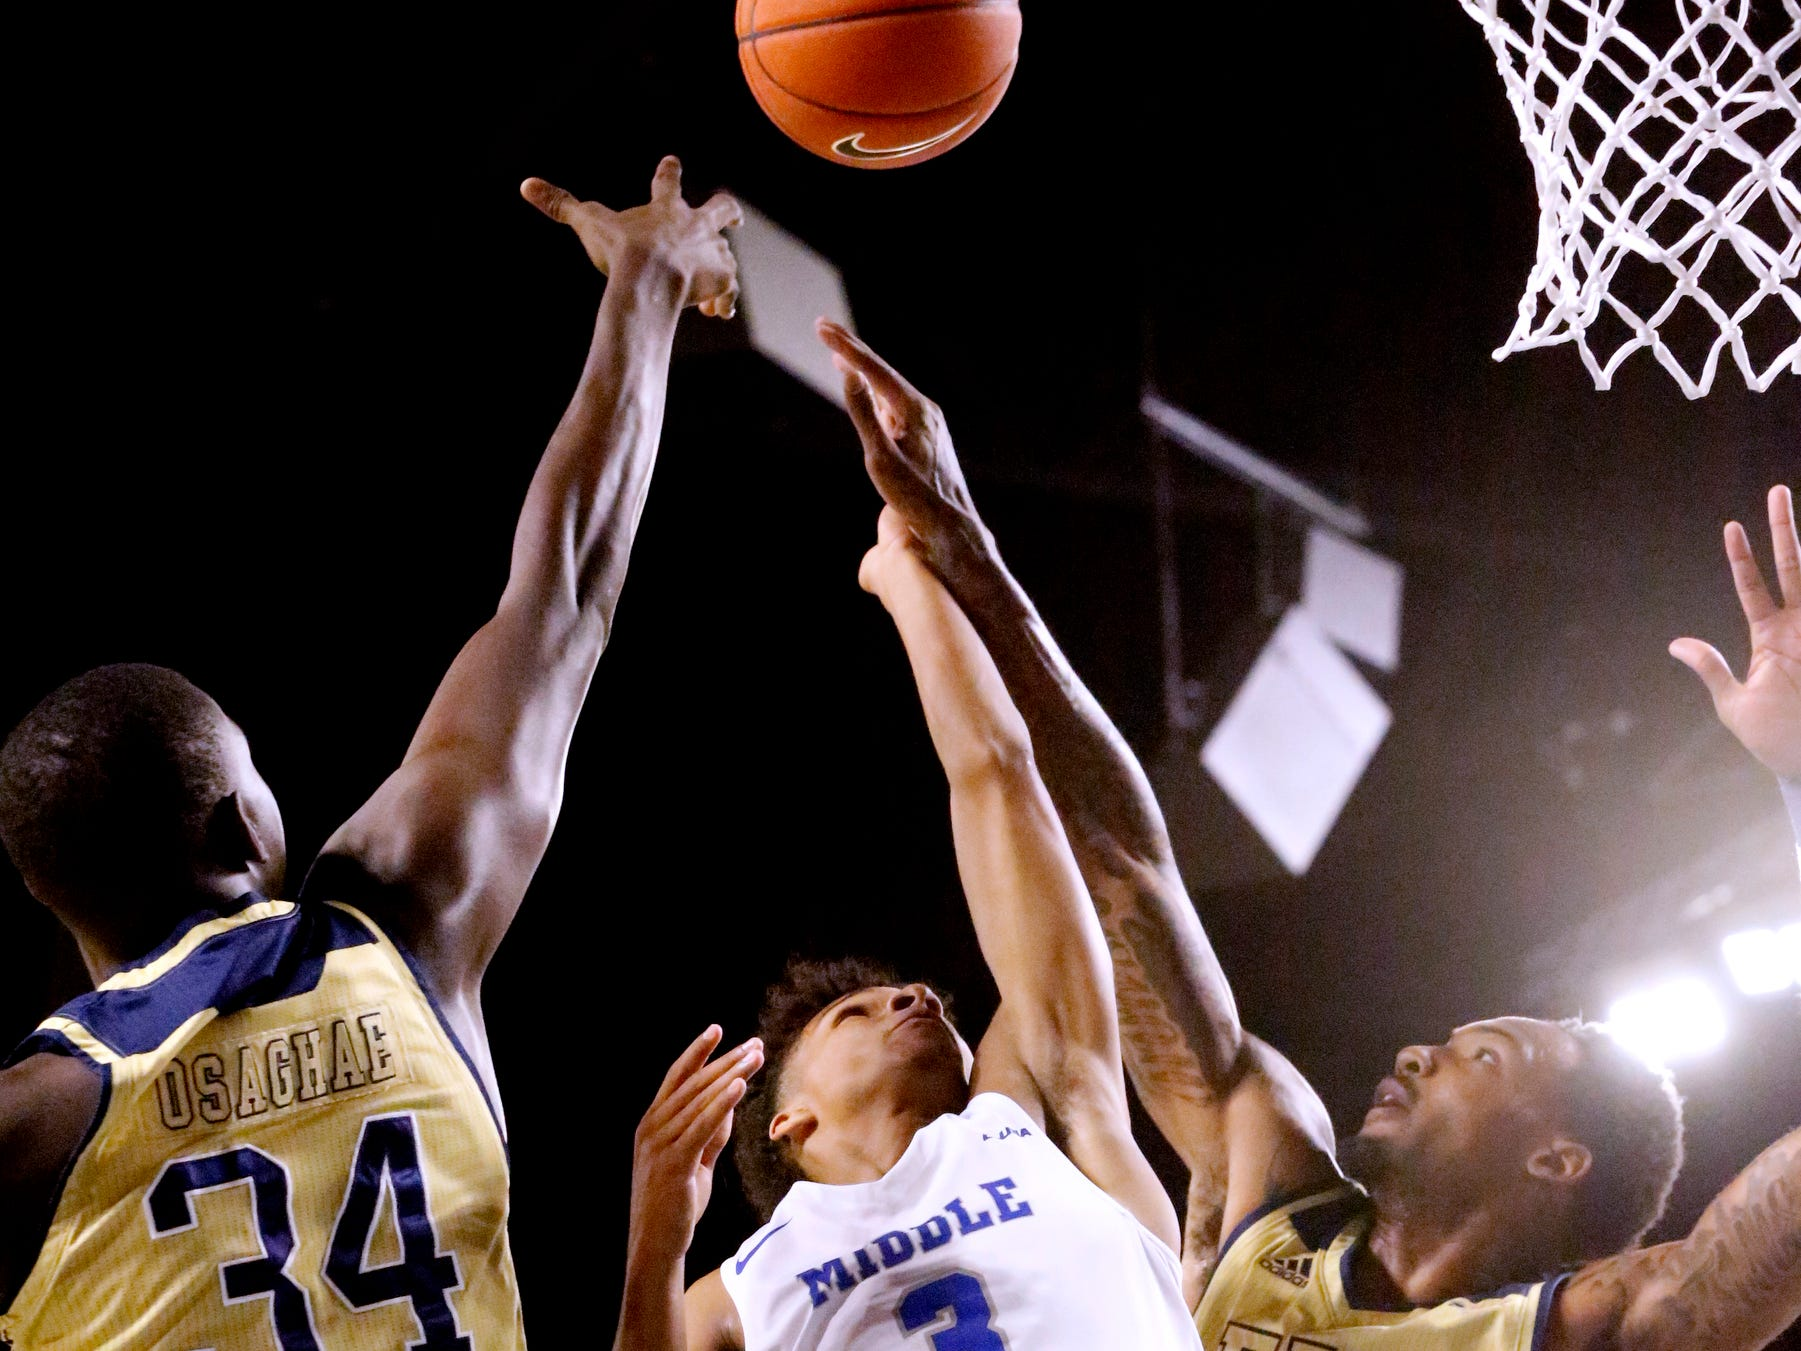 MTSU's guard Donovan Sims (3) goes up for a shot as he is guarded by FIU's forward Osasumwen Osaghae (34) and FIU's forward Devon Andrews (10) on Thursday Jan. 3, 2019, at MTSU.